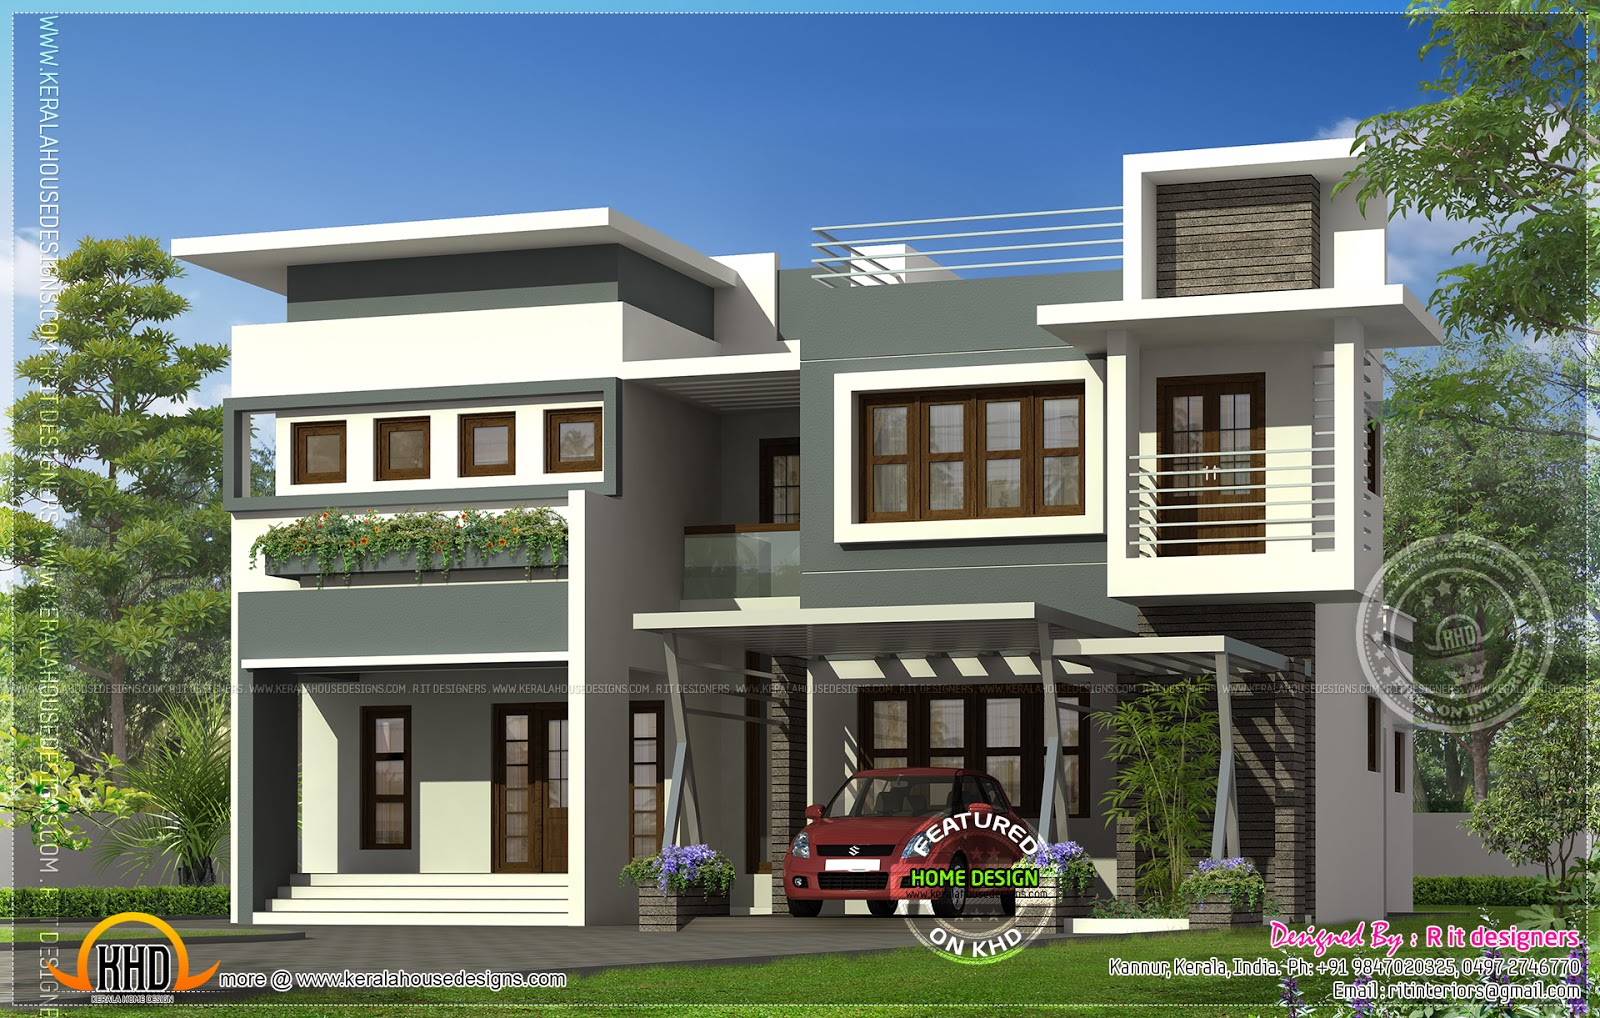 Modern contemporary residence design kerala home design for Kerala home designs contemporary